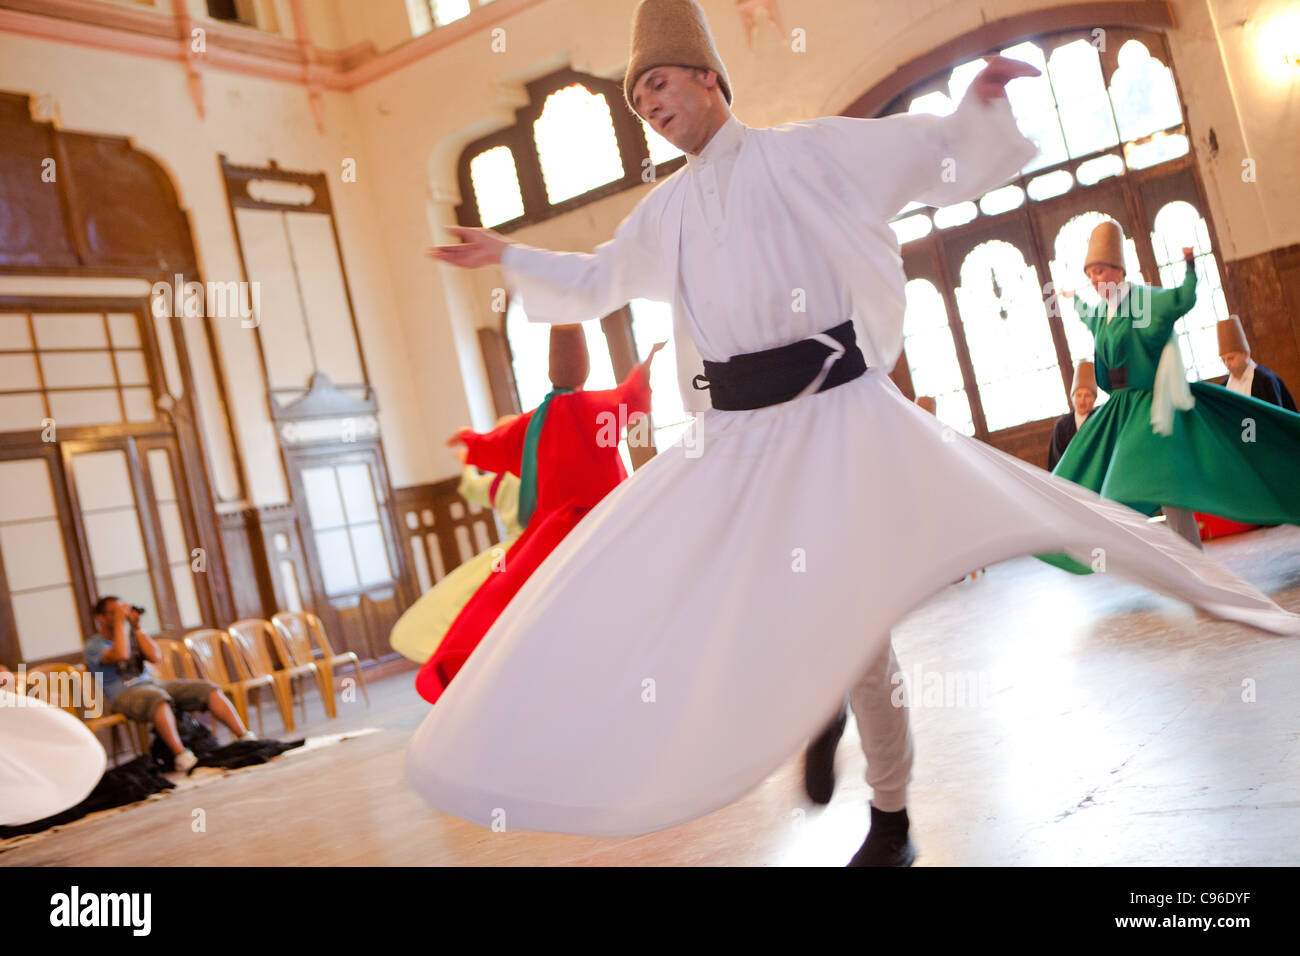 Whirling Dervishes - Istanbul, Turkey - Stock Image